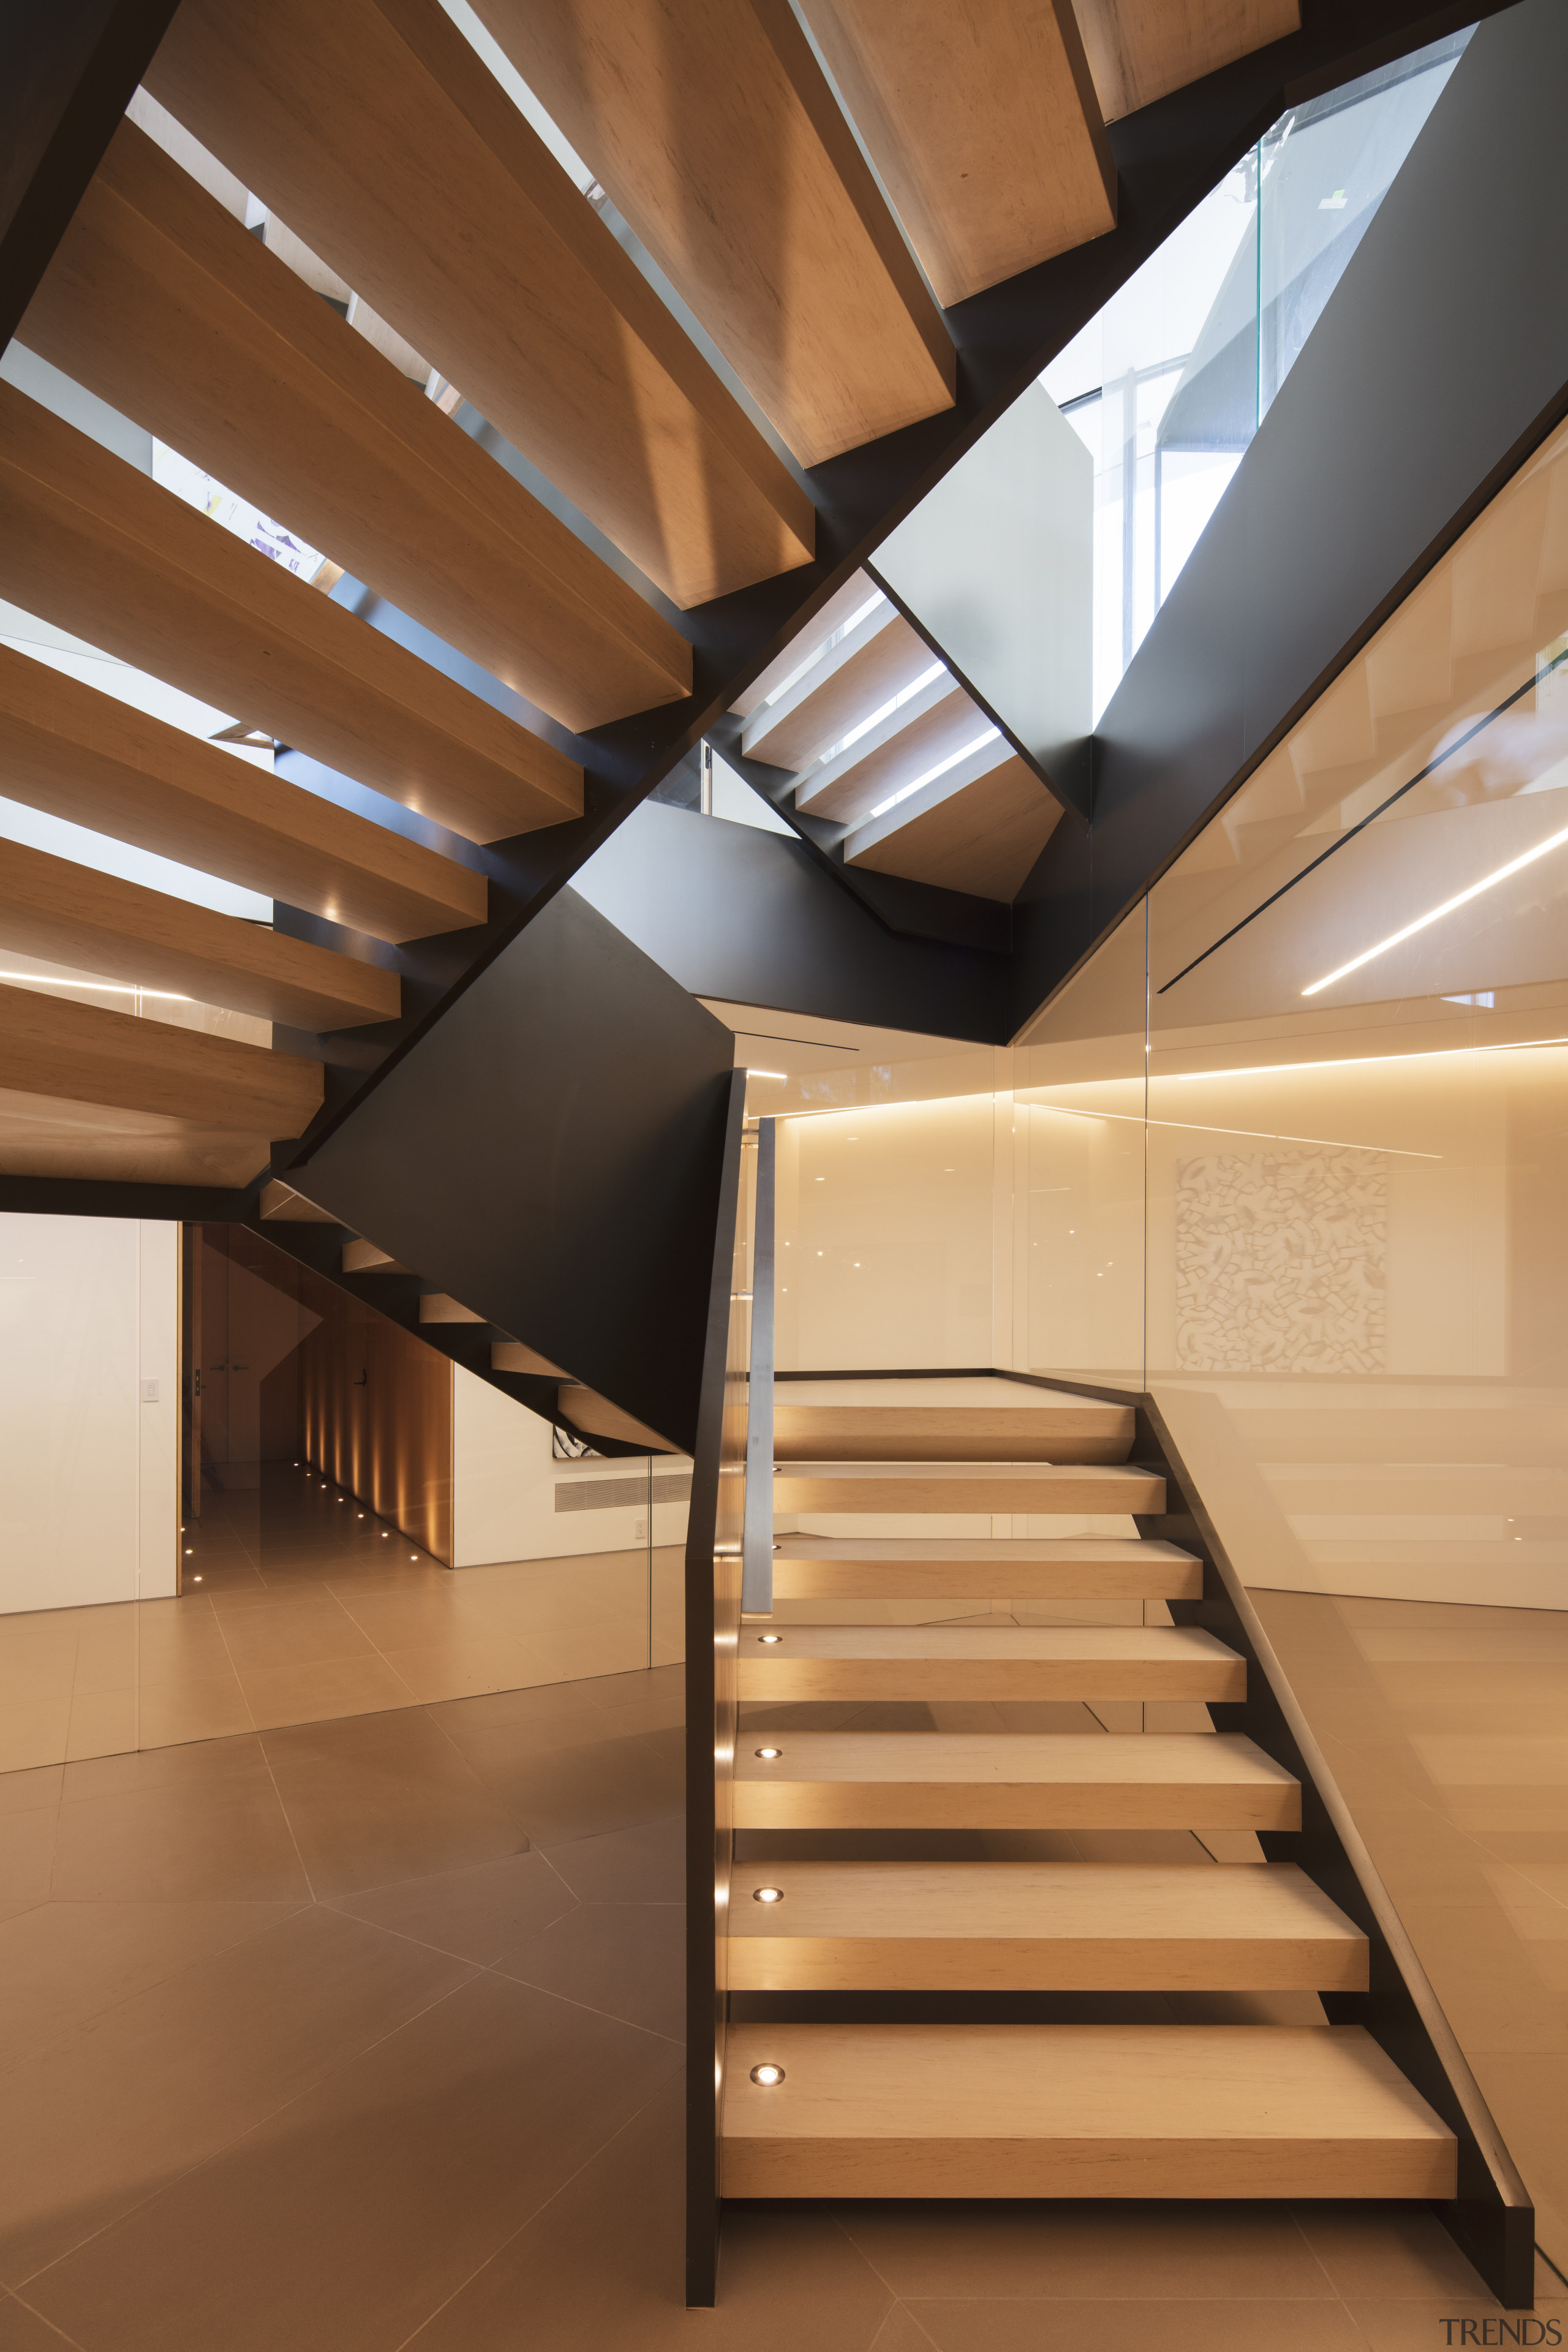 A prominent staircase runs through the central point architecture, building, ceiling, daylighting, floor, handrail, house, interior design, line, loft, room, stairs, window, brown, orange